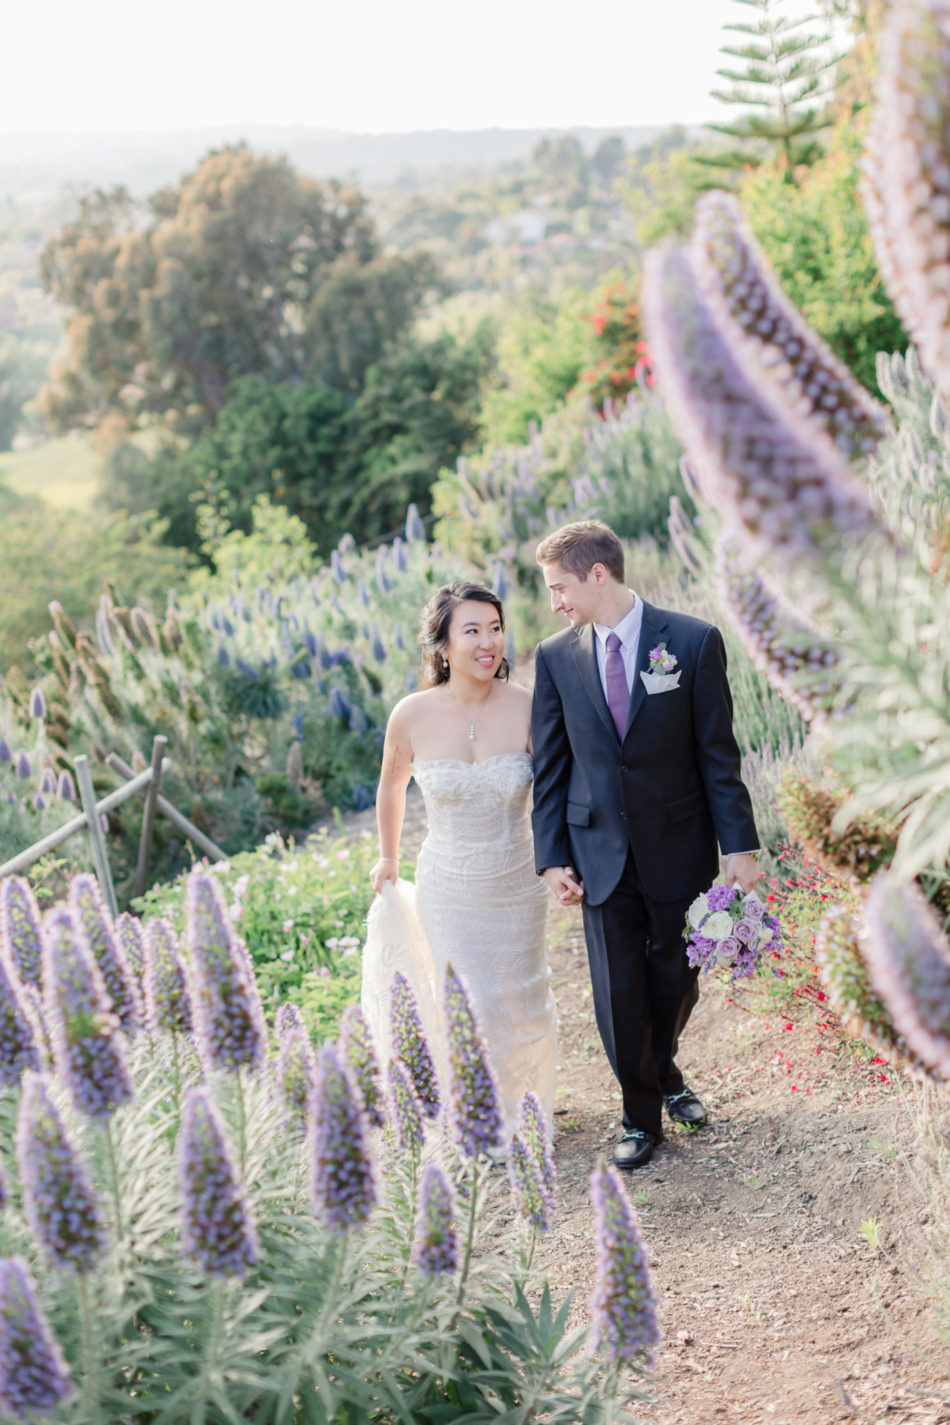 lavender wedding, bride and groom, newlyweds, floral design, florist, wedding florist, wedding flowers, orange county weddings, orange county wedding florist, orange county florist, orange county floral design, flowers by cina